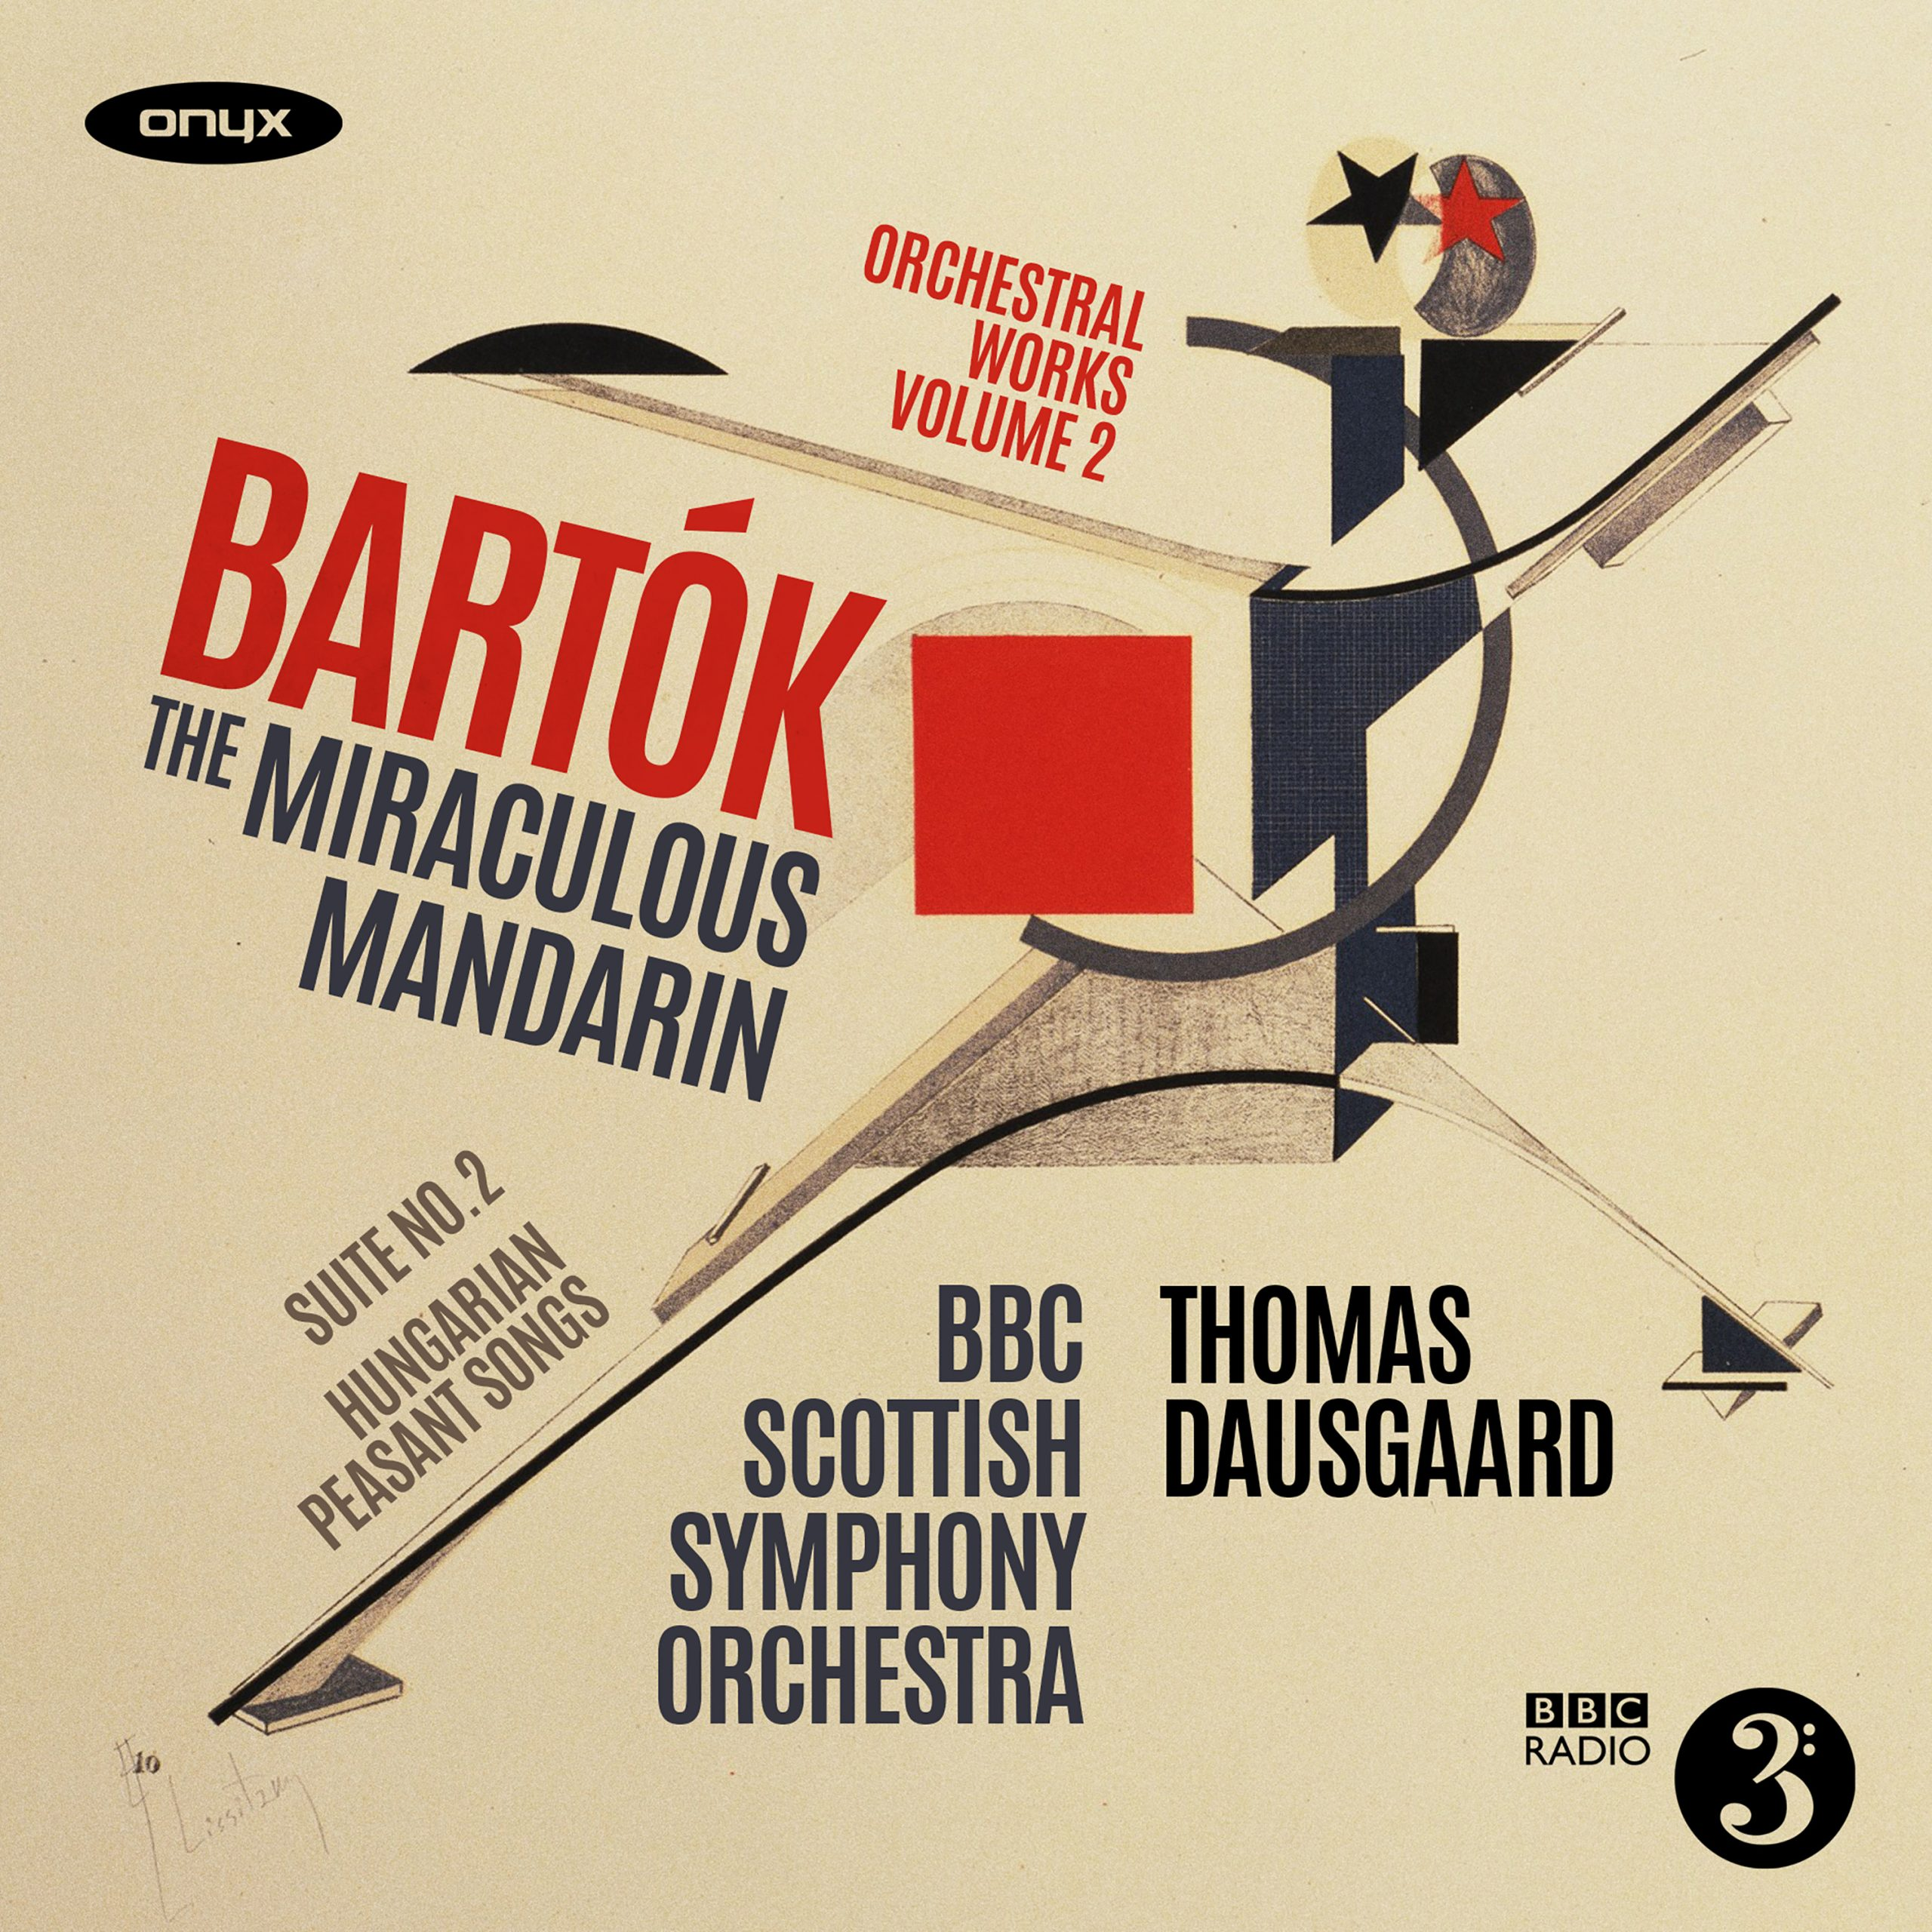 Bartók – The Miraculous Mandarin